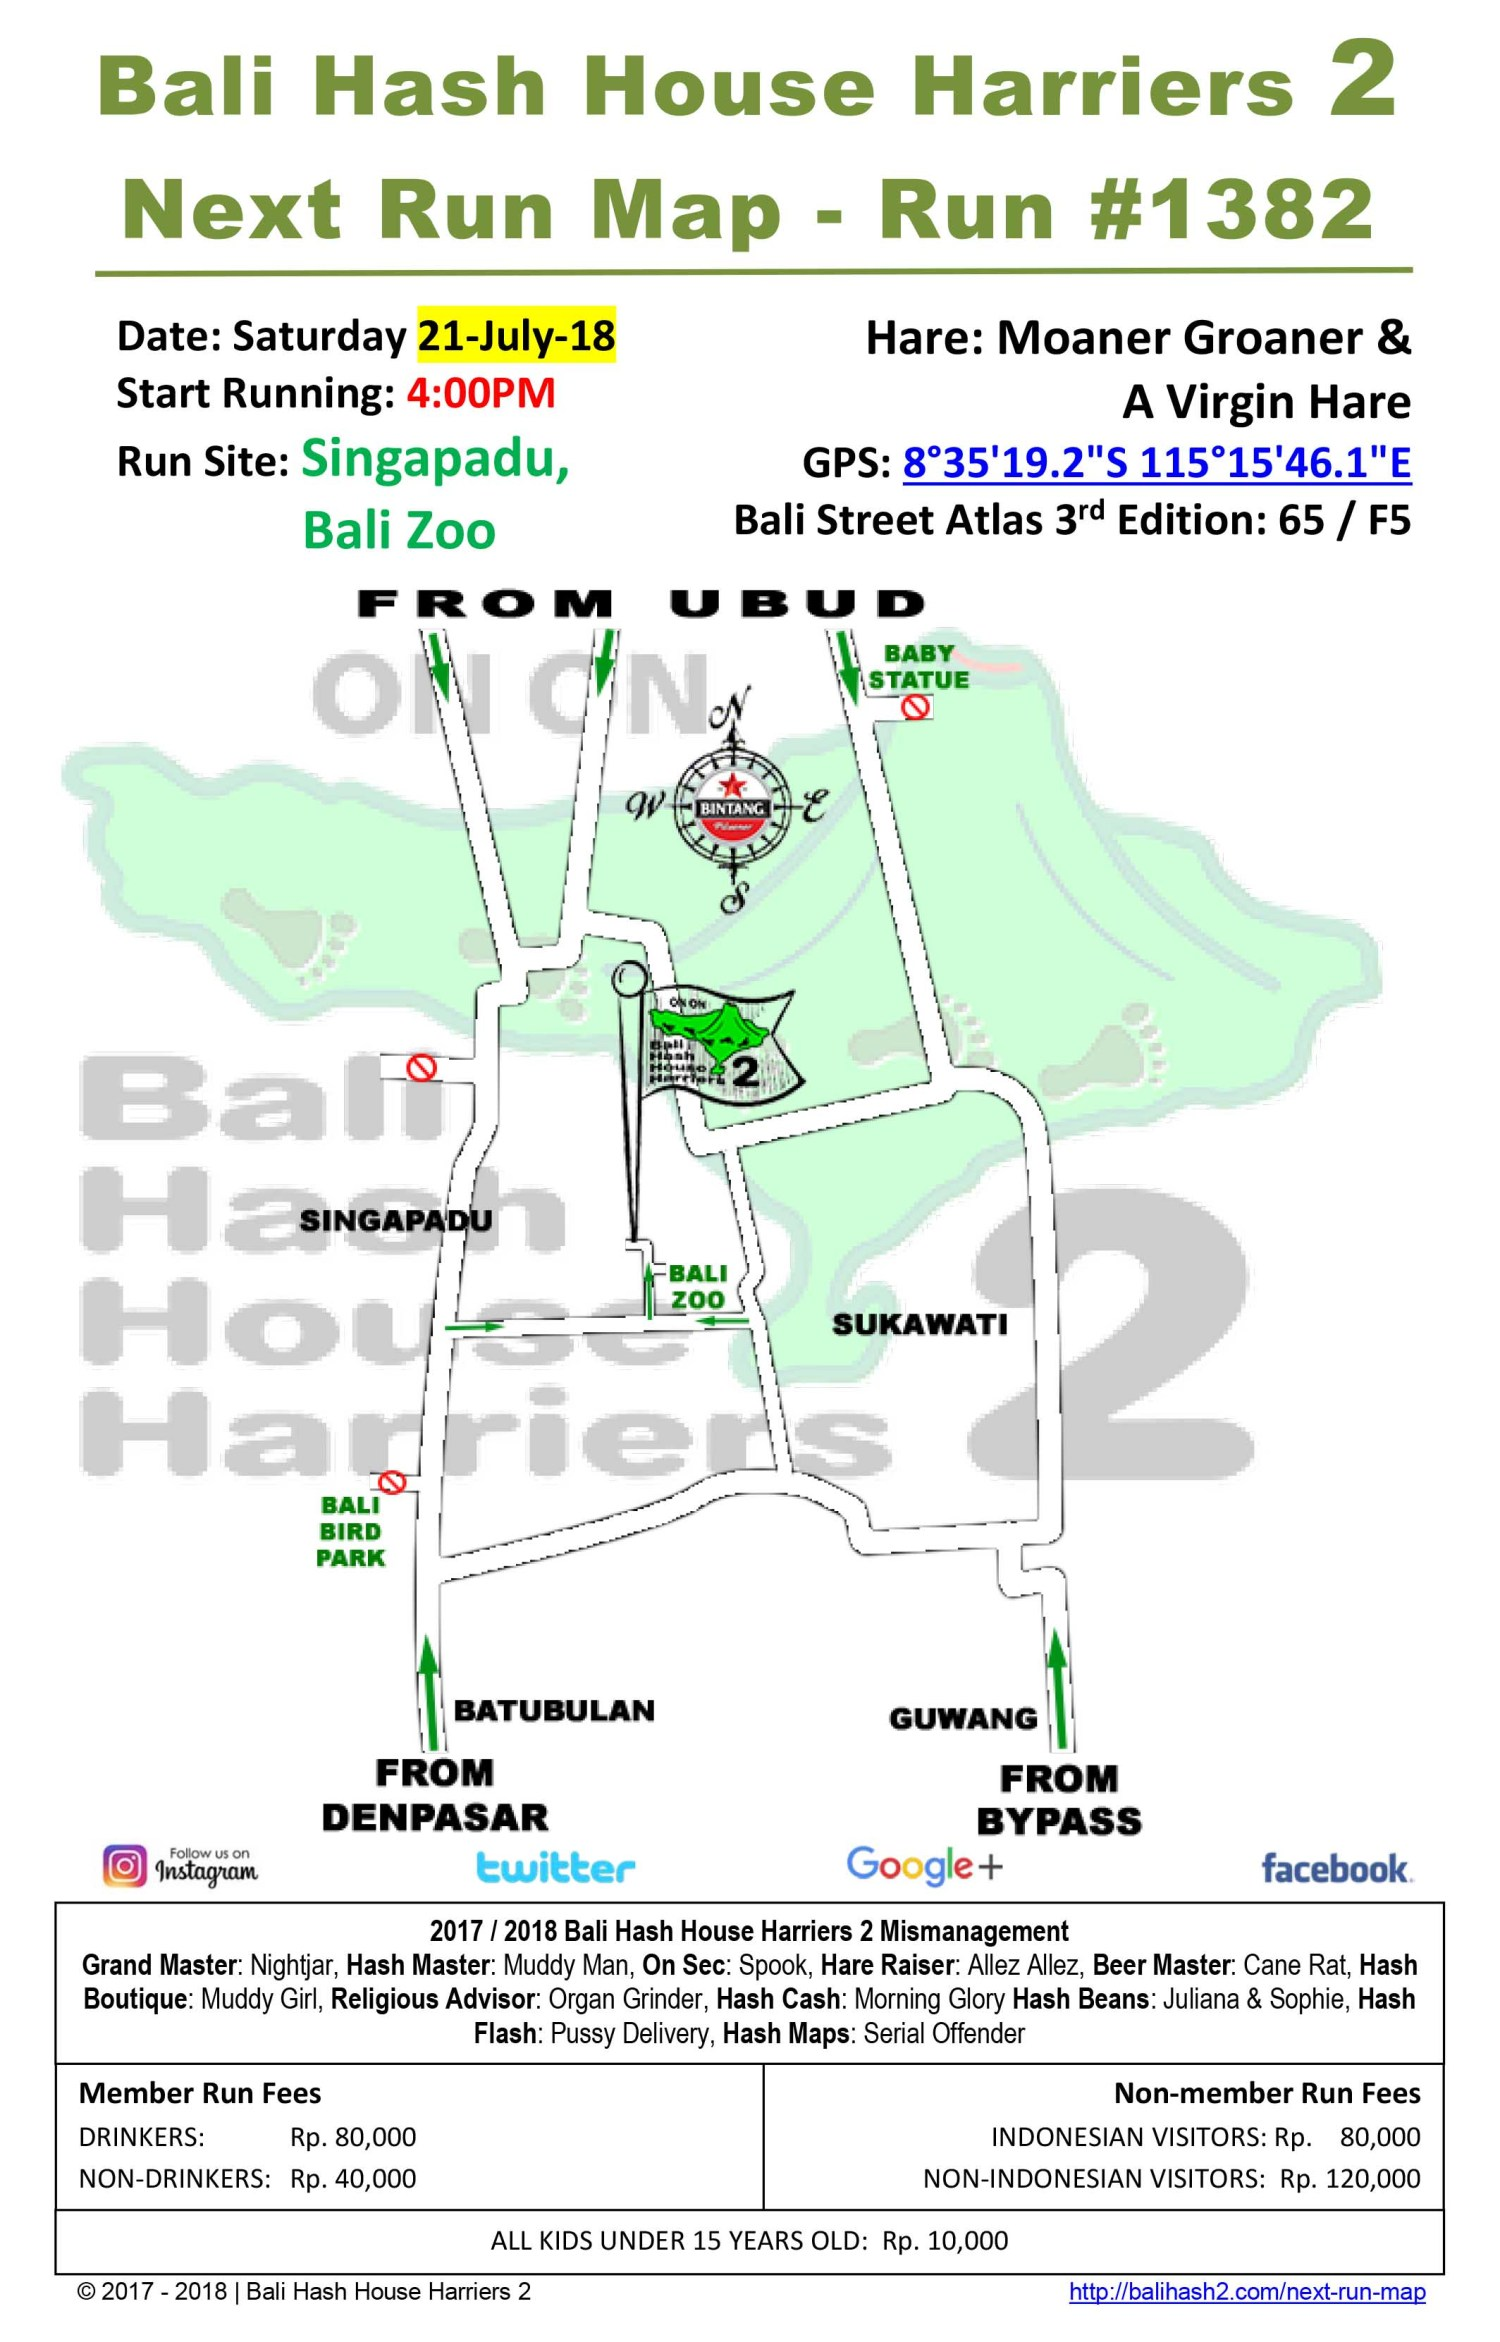 UPDATE: Run #1382 Singapadu Bali Zoo 21-Jul-18